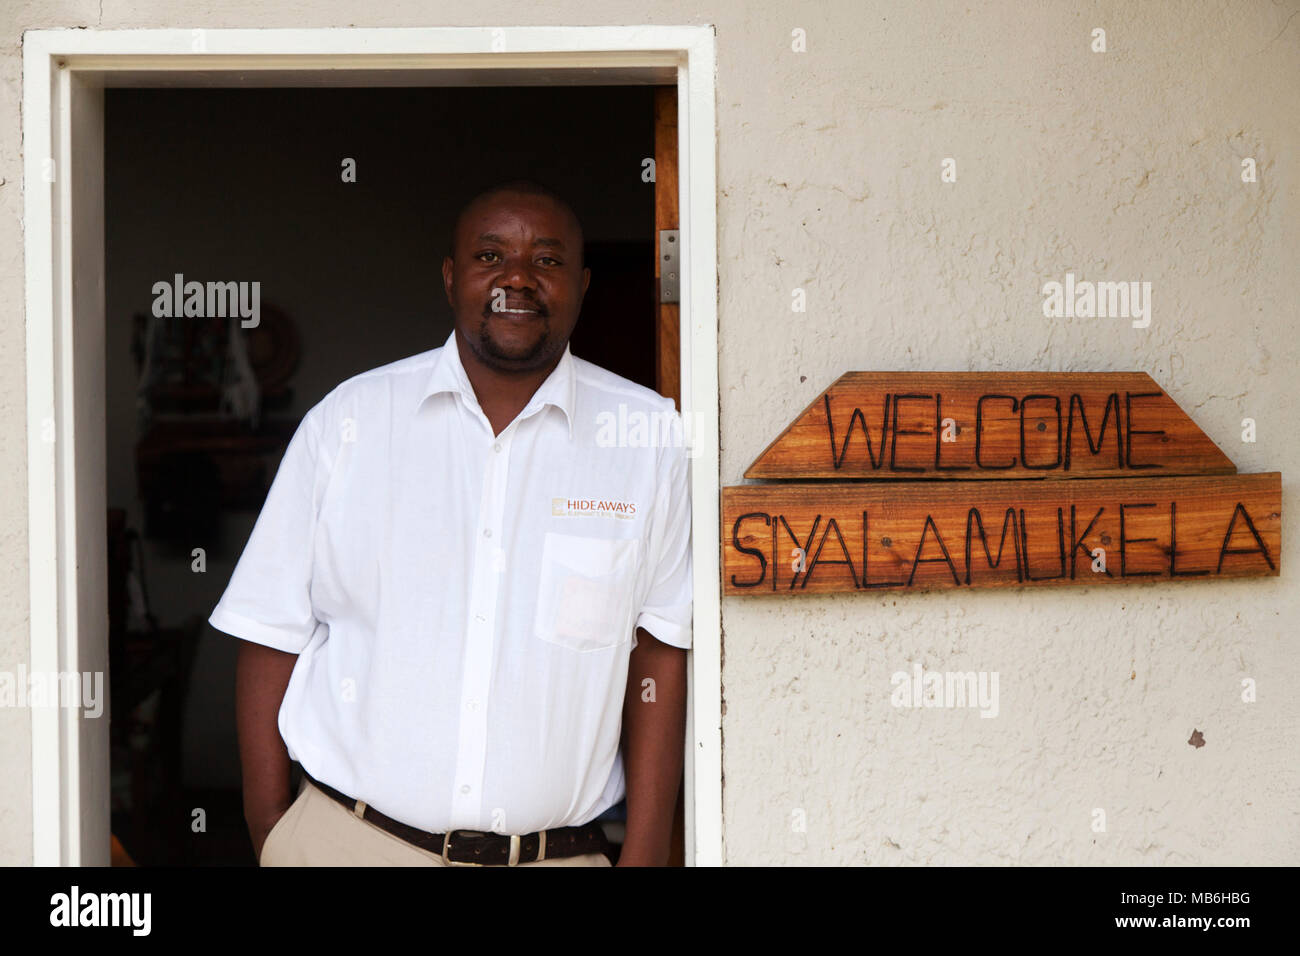 Staff member at the Elephant Eye Safari Lodge in Hwange National Park, Zimbabwe. The man leans against a door frame by a sign welcoming guests. - Stock Image